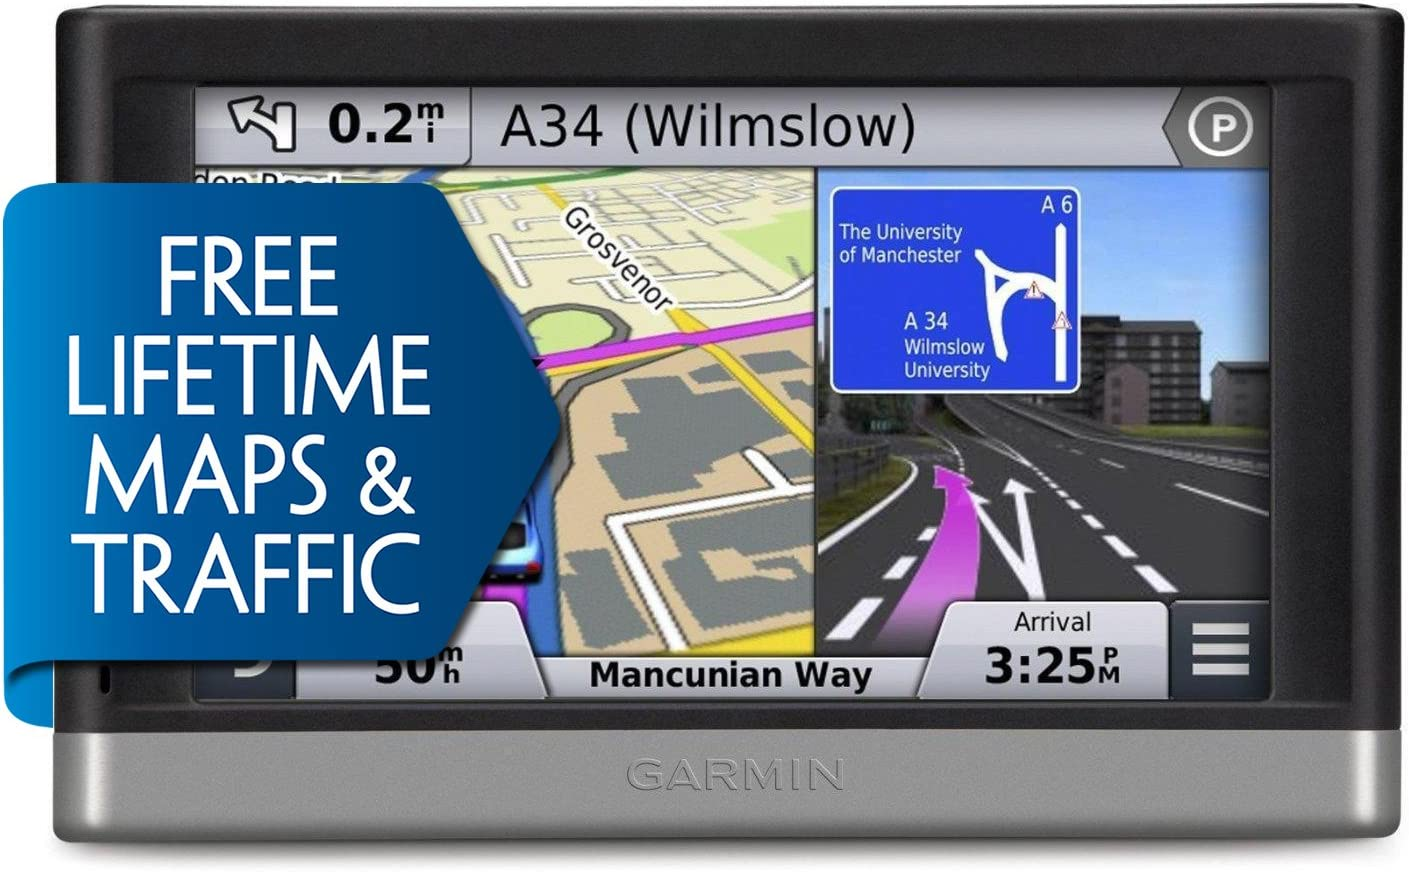 Garmin nuvi 2597LMT 5-Inch Bluetooth Portable Vehicle GPS with Lifetime Maps and Traffic 2597LMT Renewed